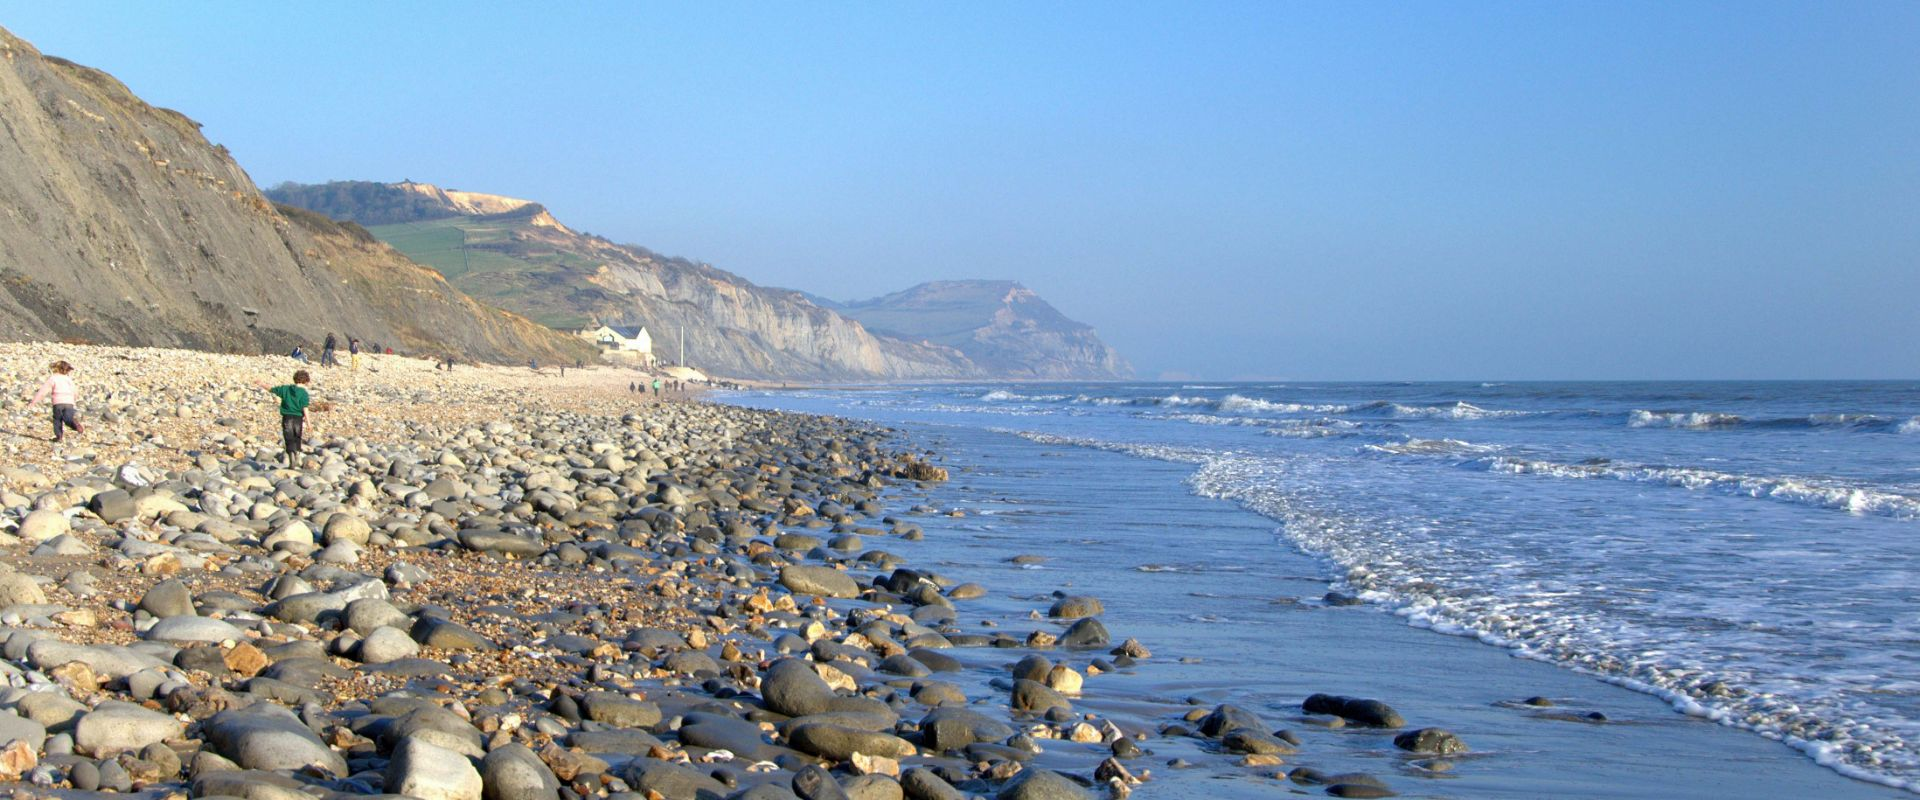 The view along Charmouth Beach in Dorset